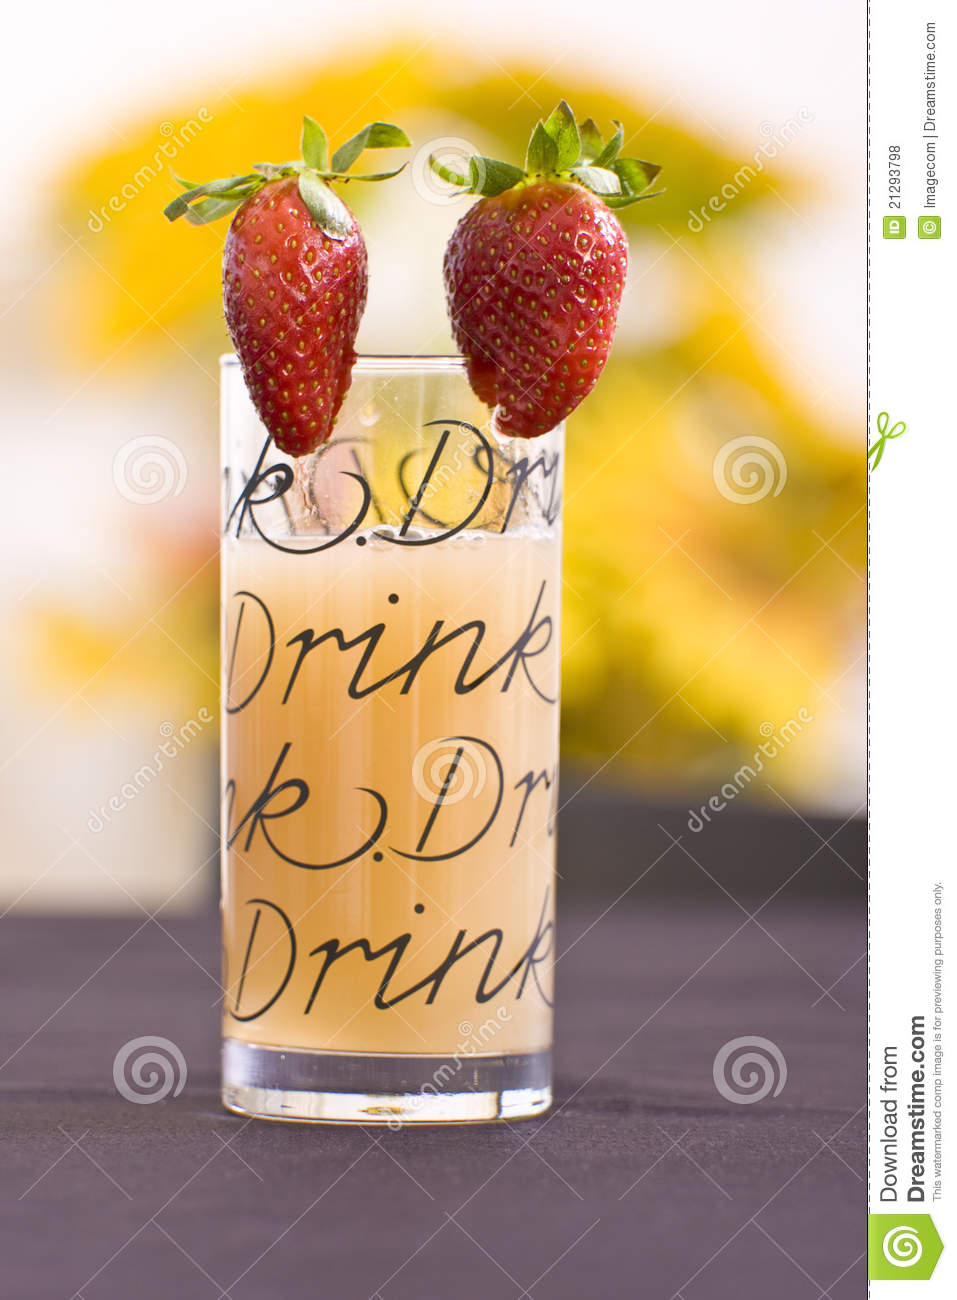 Cool Drink Royalty Free Stock Photos - Image: 21293798